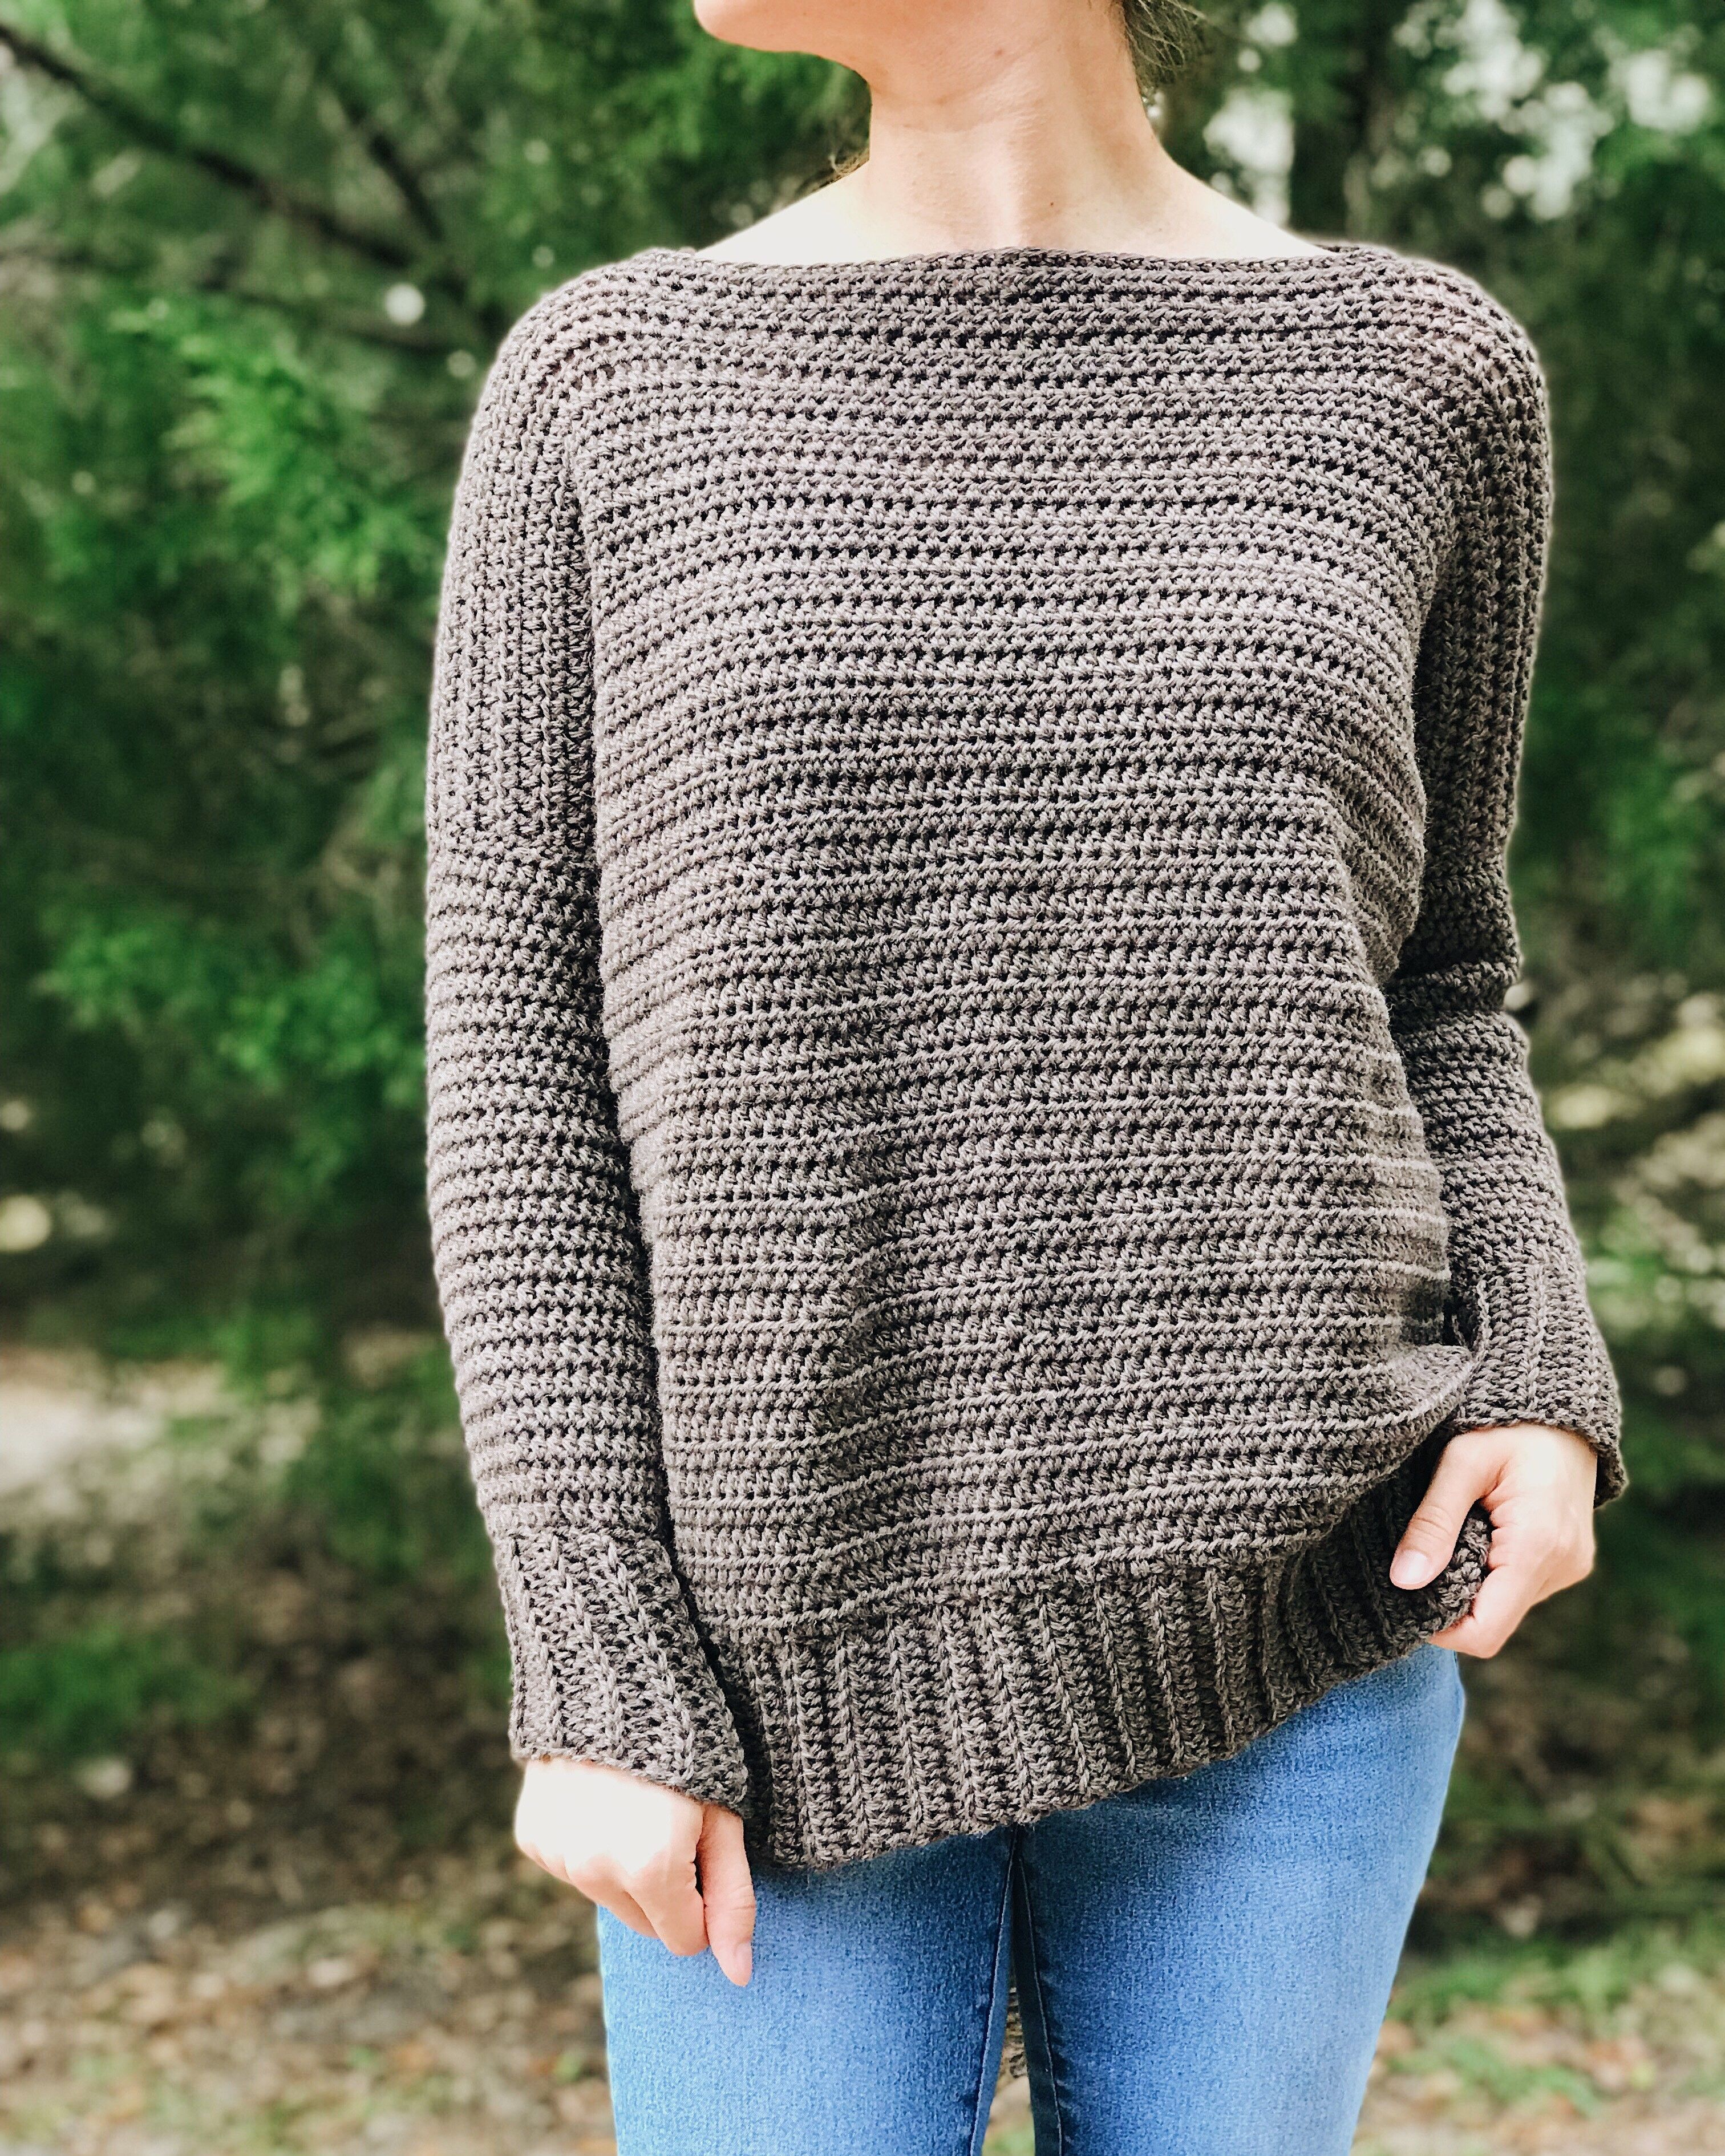 The Oversized Crochet Pullover Sweater Pattern by BrennaAnnHandmade #crochetedsweaters